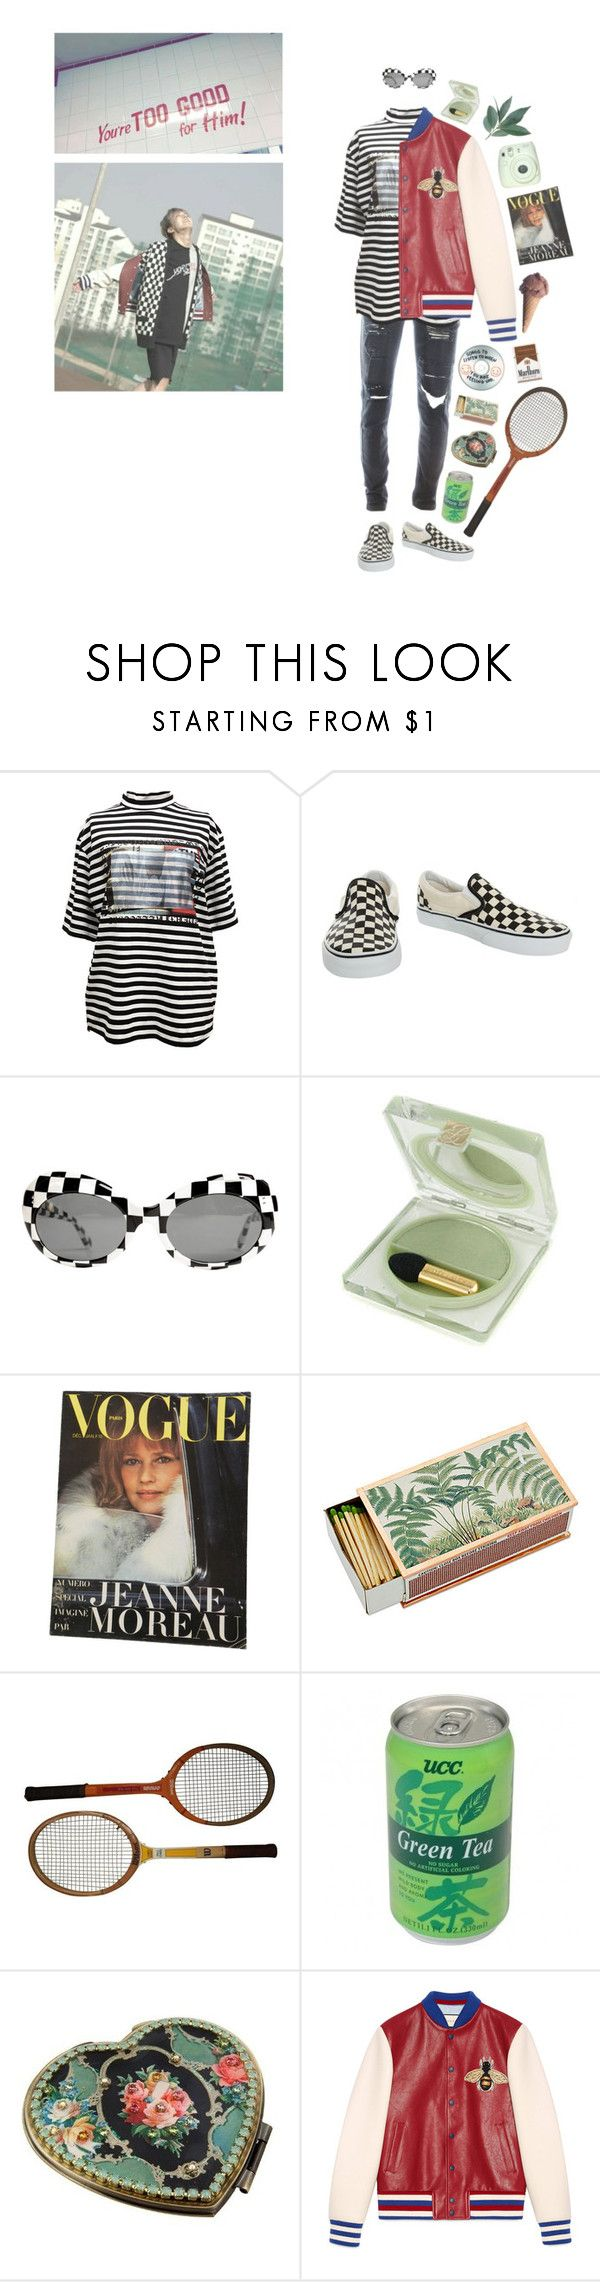 """""""tennis courts"""" by ghostkid ❤ liked on Polyvore featuring M.Y.O.B., Vans, Estée Lauder, Dot & Bo, Sharpie, Michal Negrin, Gucci and vintage"""